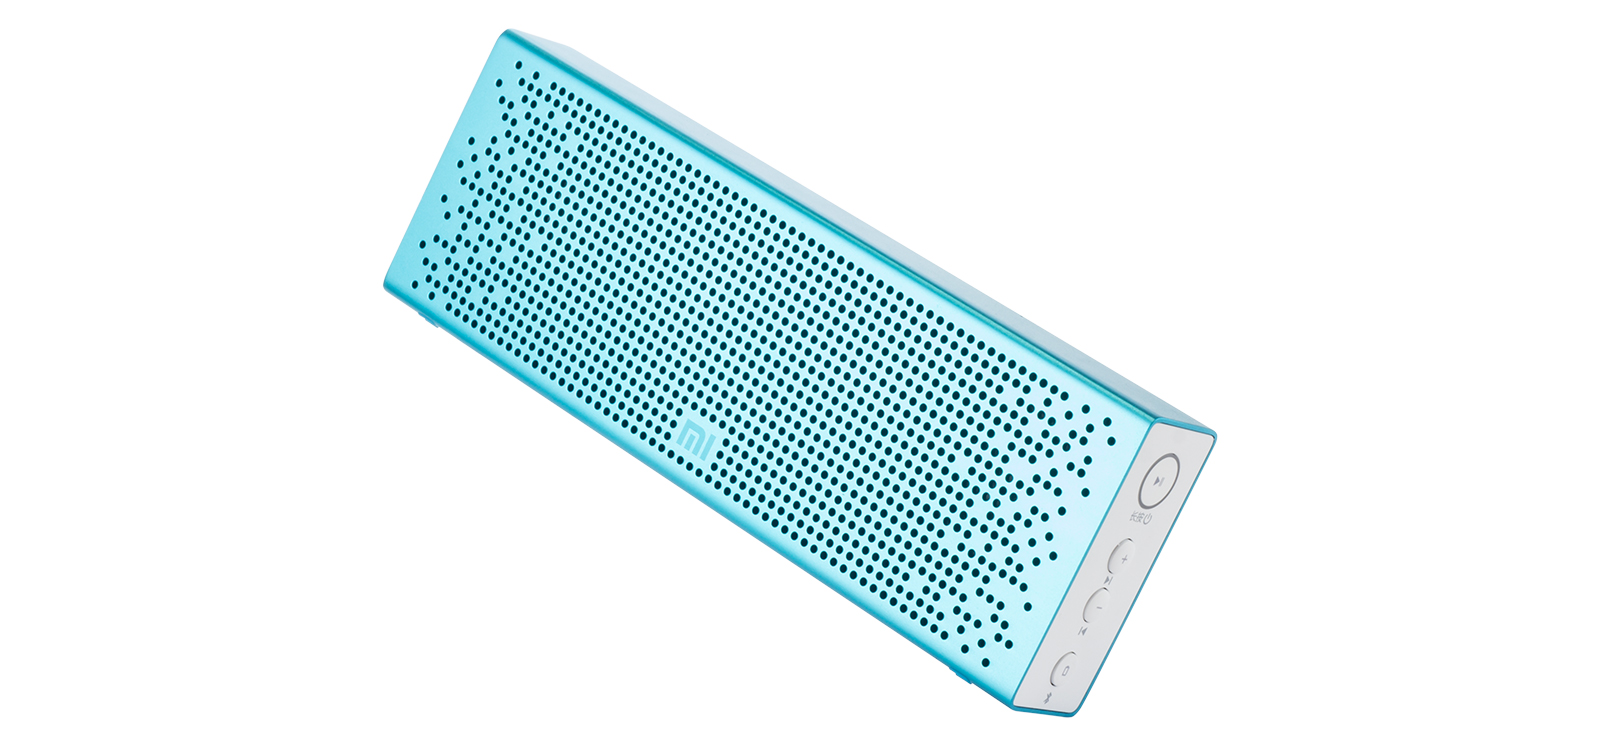 Портативная колонка Xiaomi Mi Bluetooth Speaker Blue портативная bluetooth колонка hyundai h pac120 blue